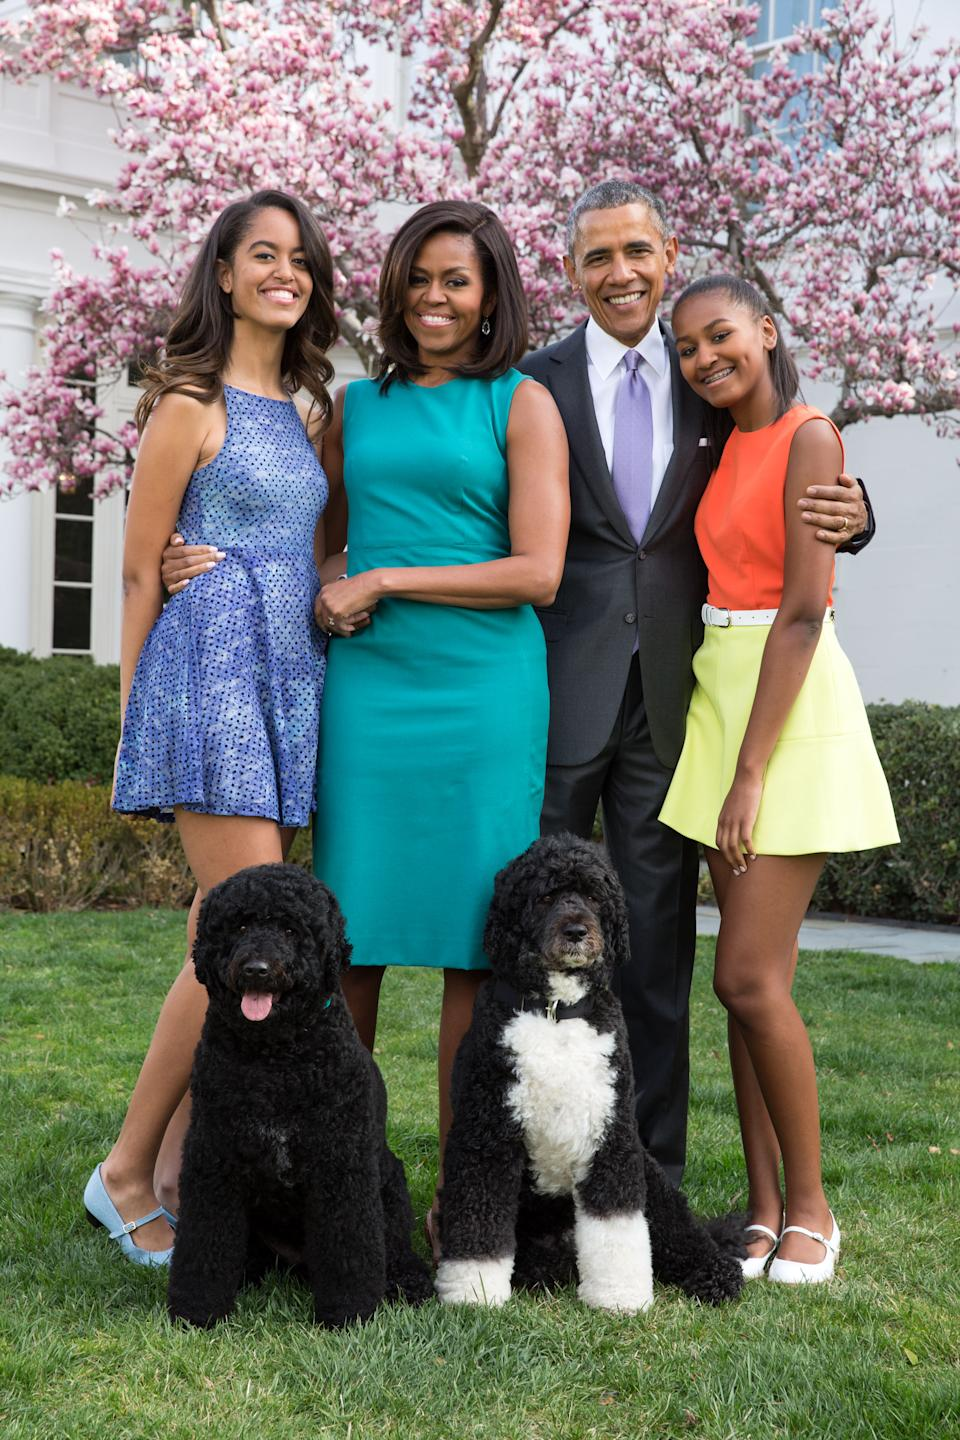 (L-R): Malia Obama, former first lady Michelle Obama, former president Barack Obama and Sasha Obama, depicted in 2015. (Photo: Pete Souza/The White House via Getty Images)